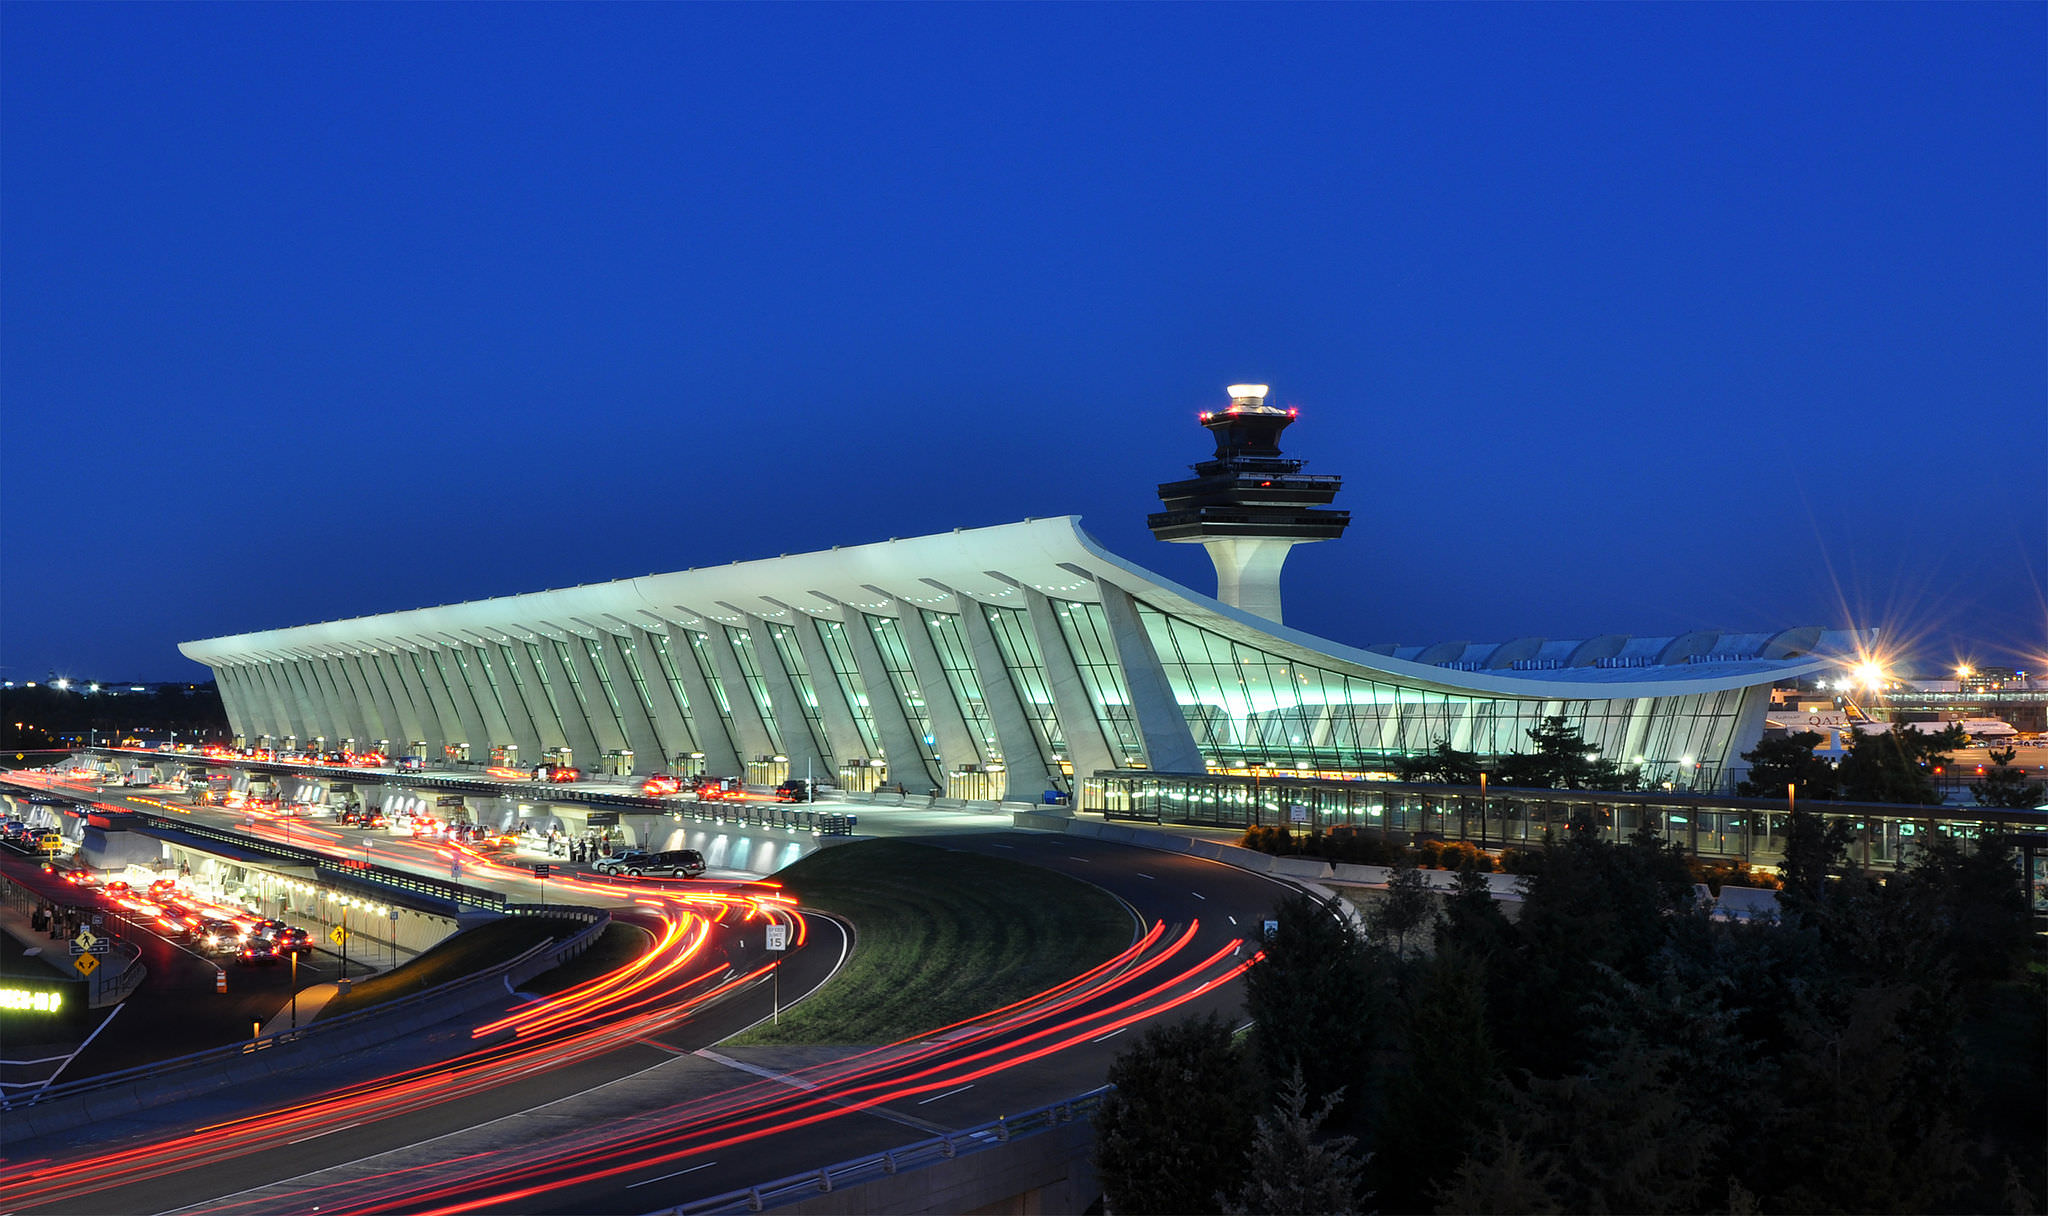 Washington Dulles at night